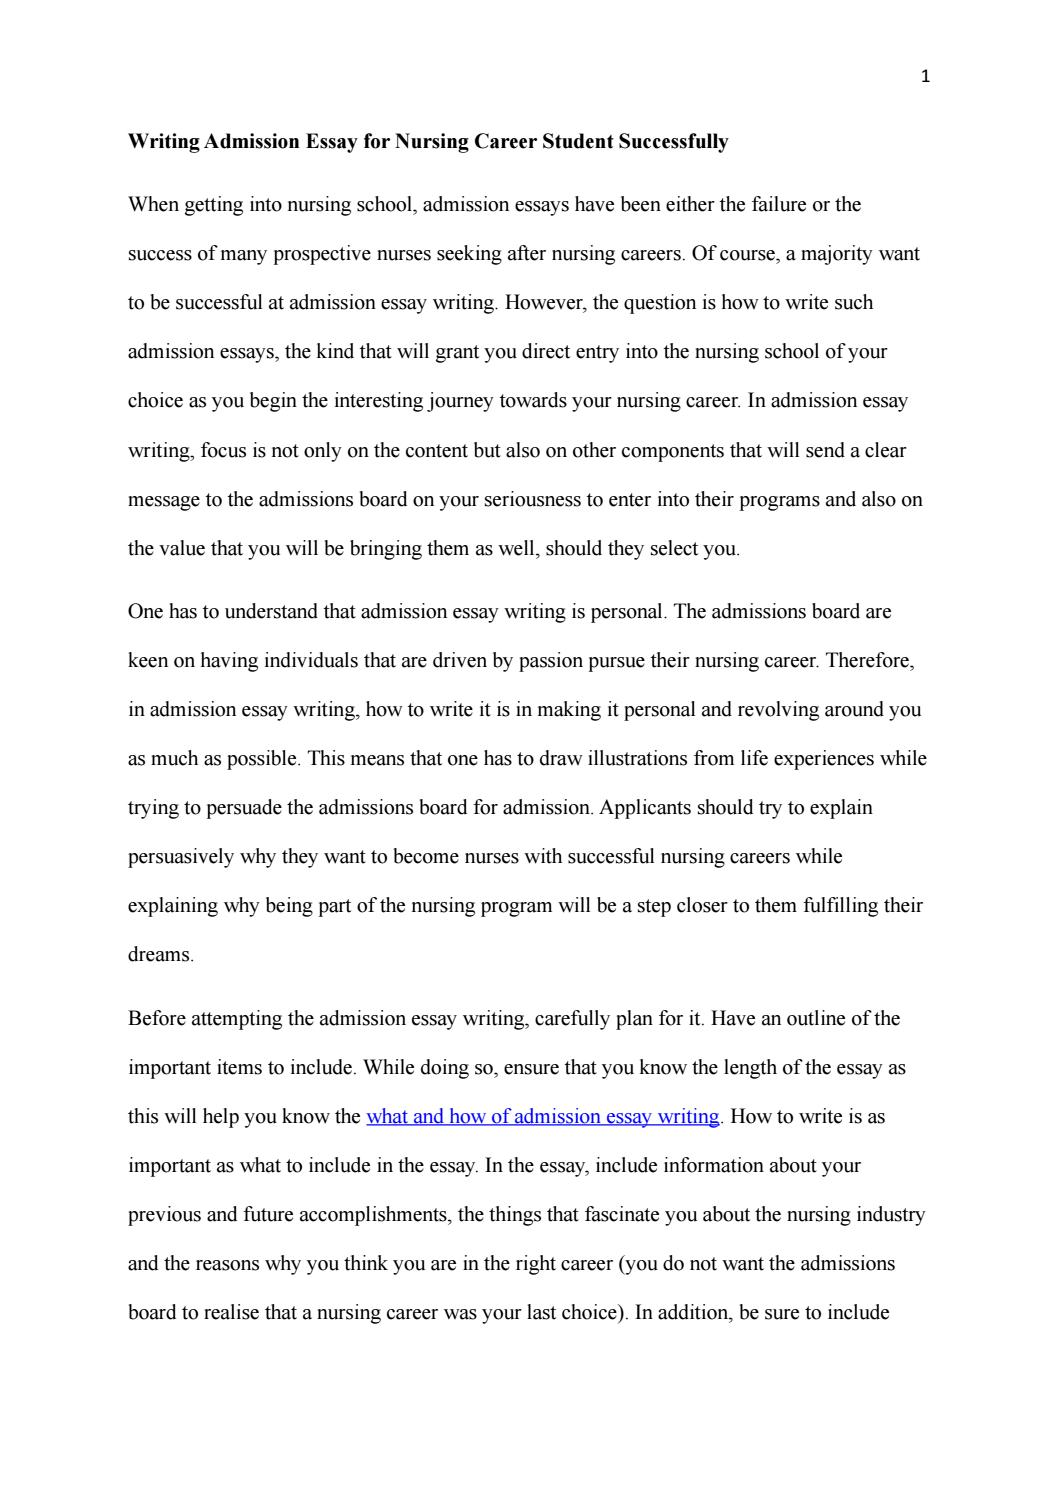 Admission essay writing 8 tracks